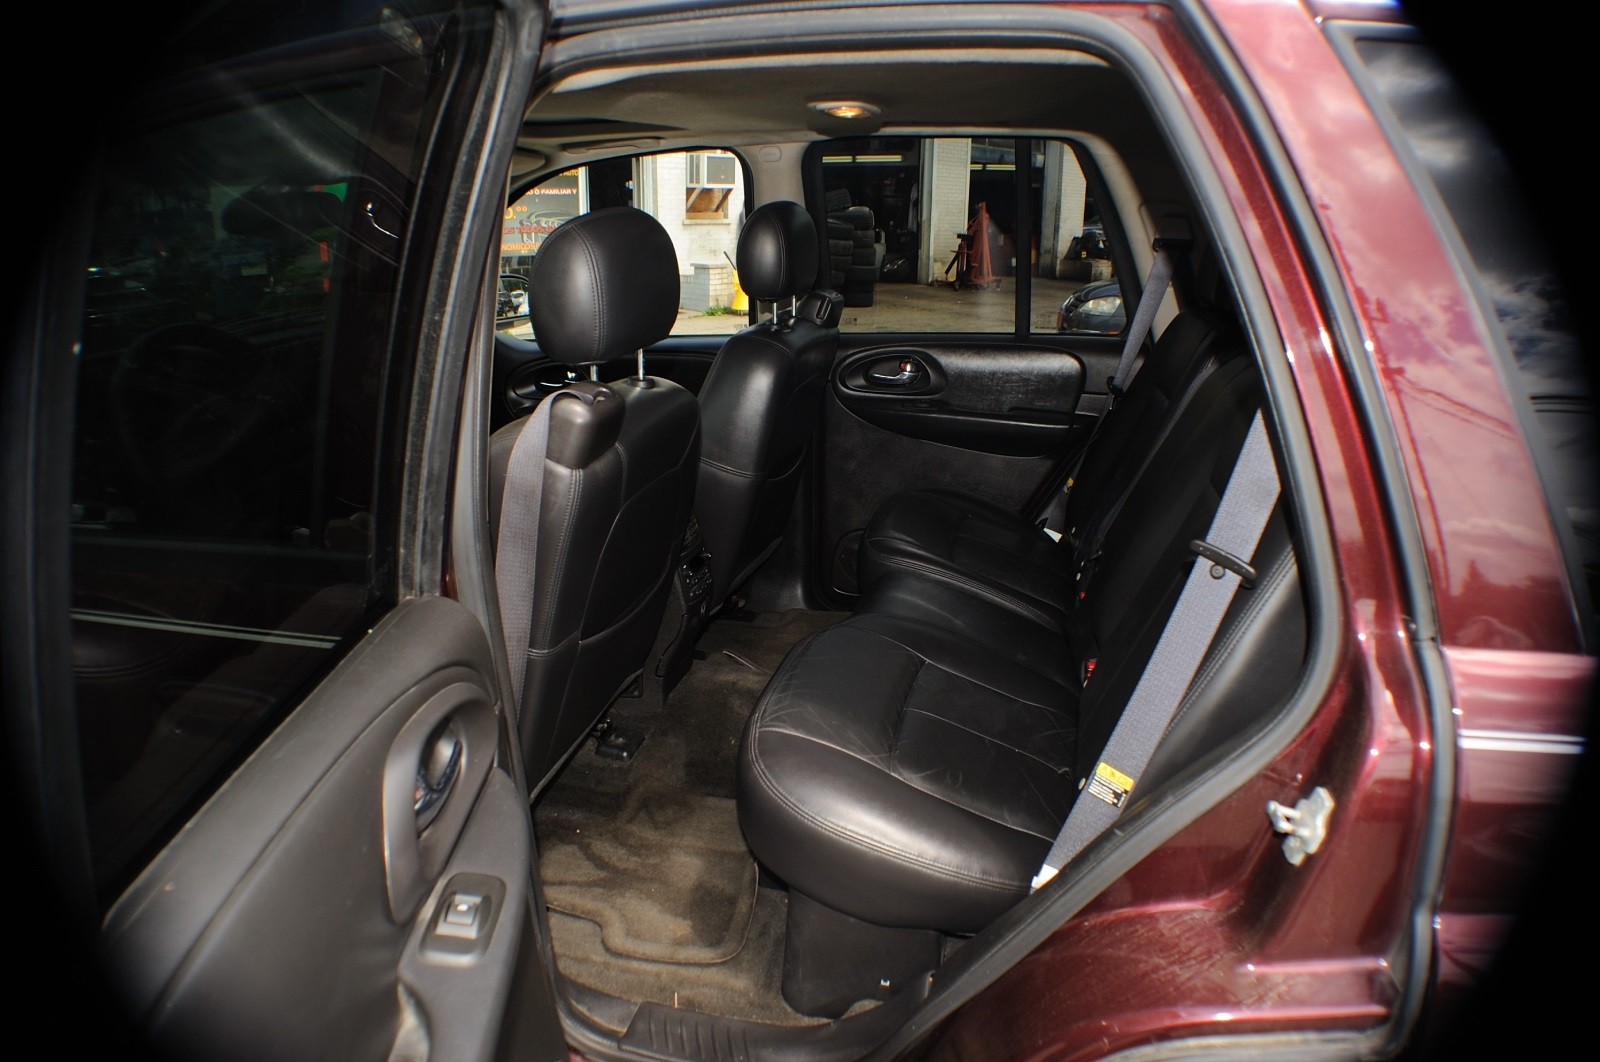 2006 Chevrolet Trailblazer LT Burgundy Used SUV Sale Aurora Berwyn Calumet City Chicago Heights